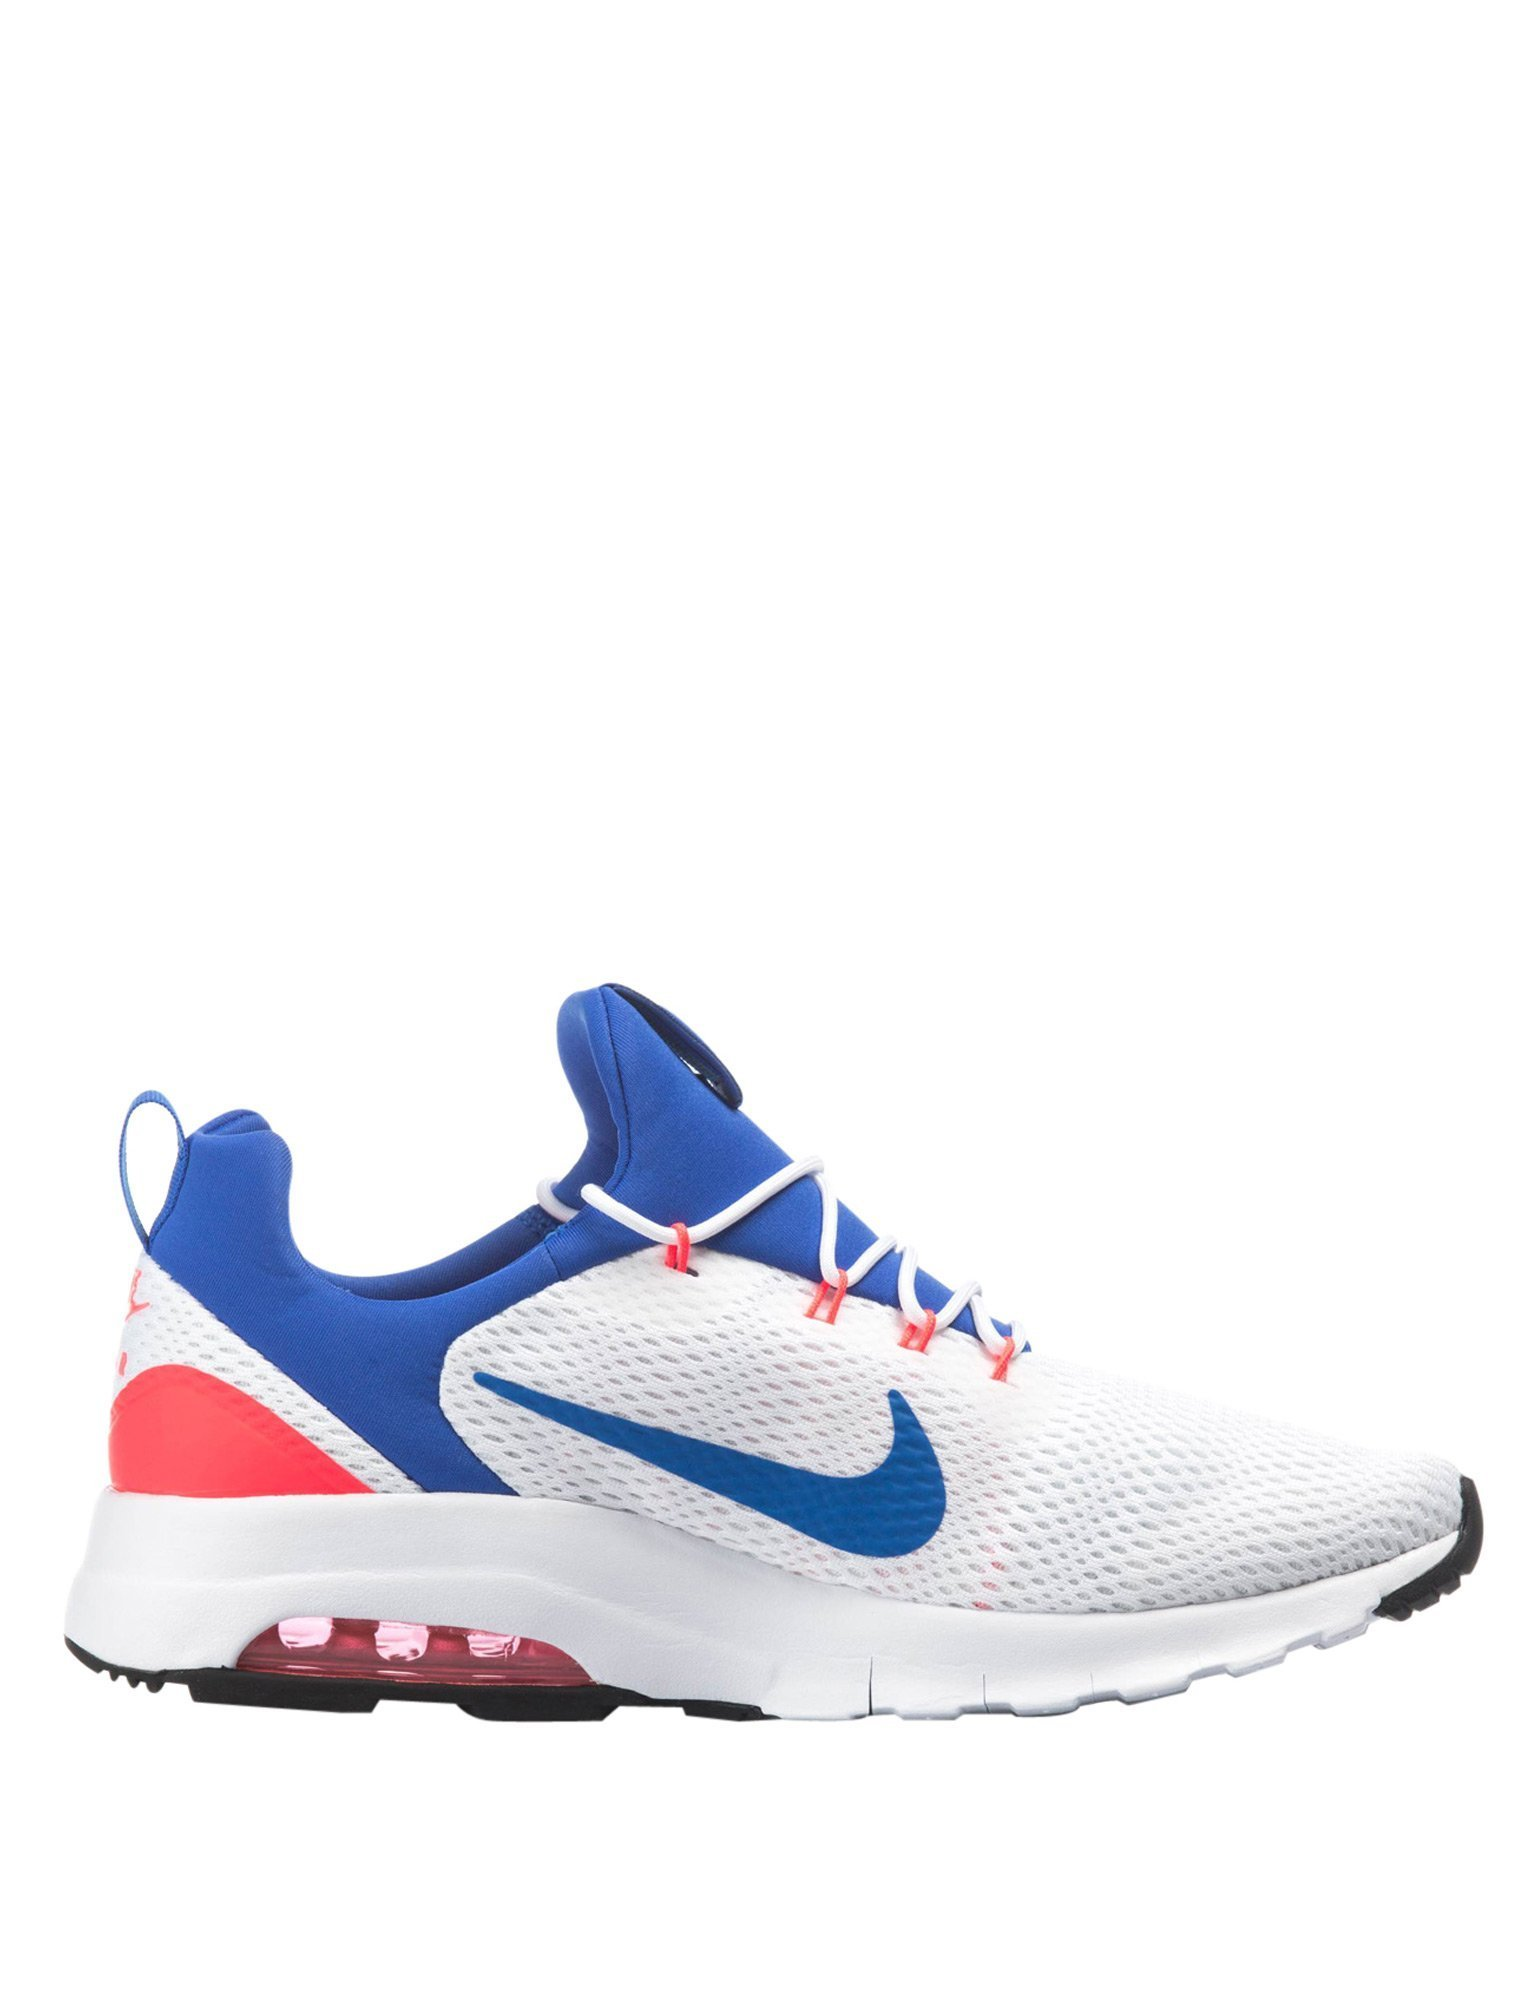 1ad132209c6b NIKE Men s Air Max Motion Racer White-Blue Sneakers - 916771100 ...